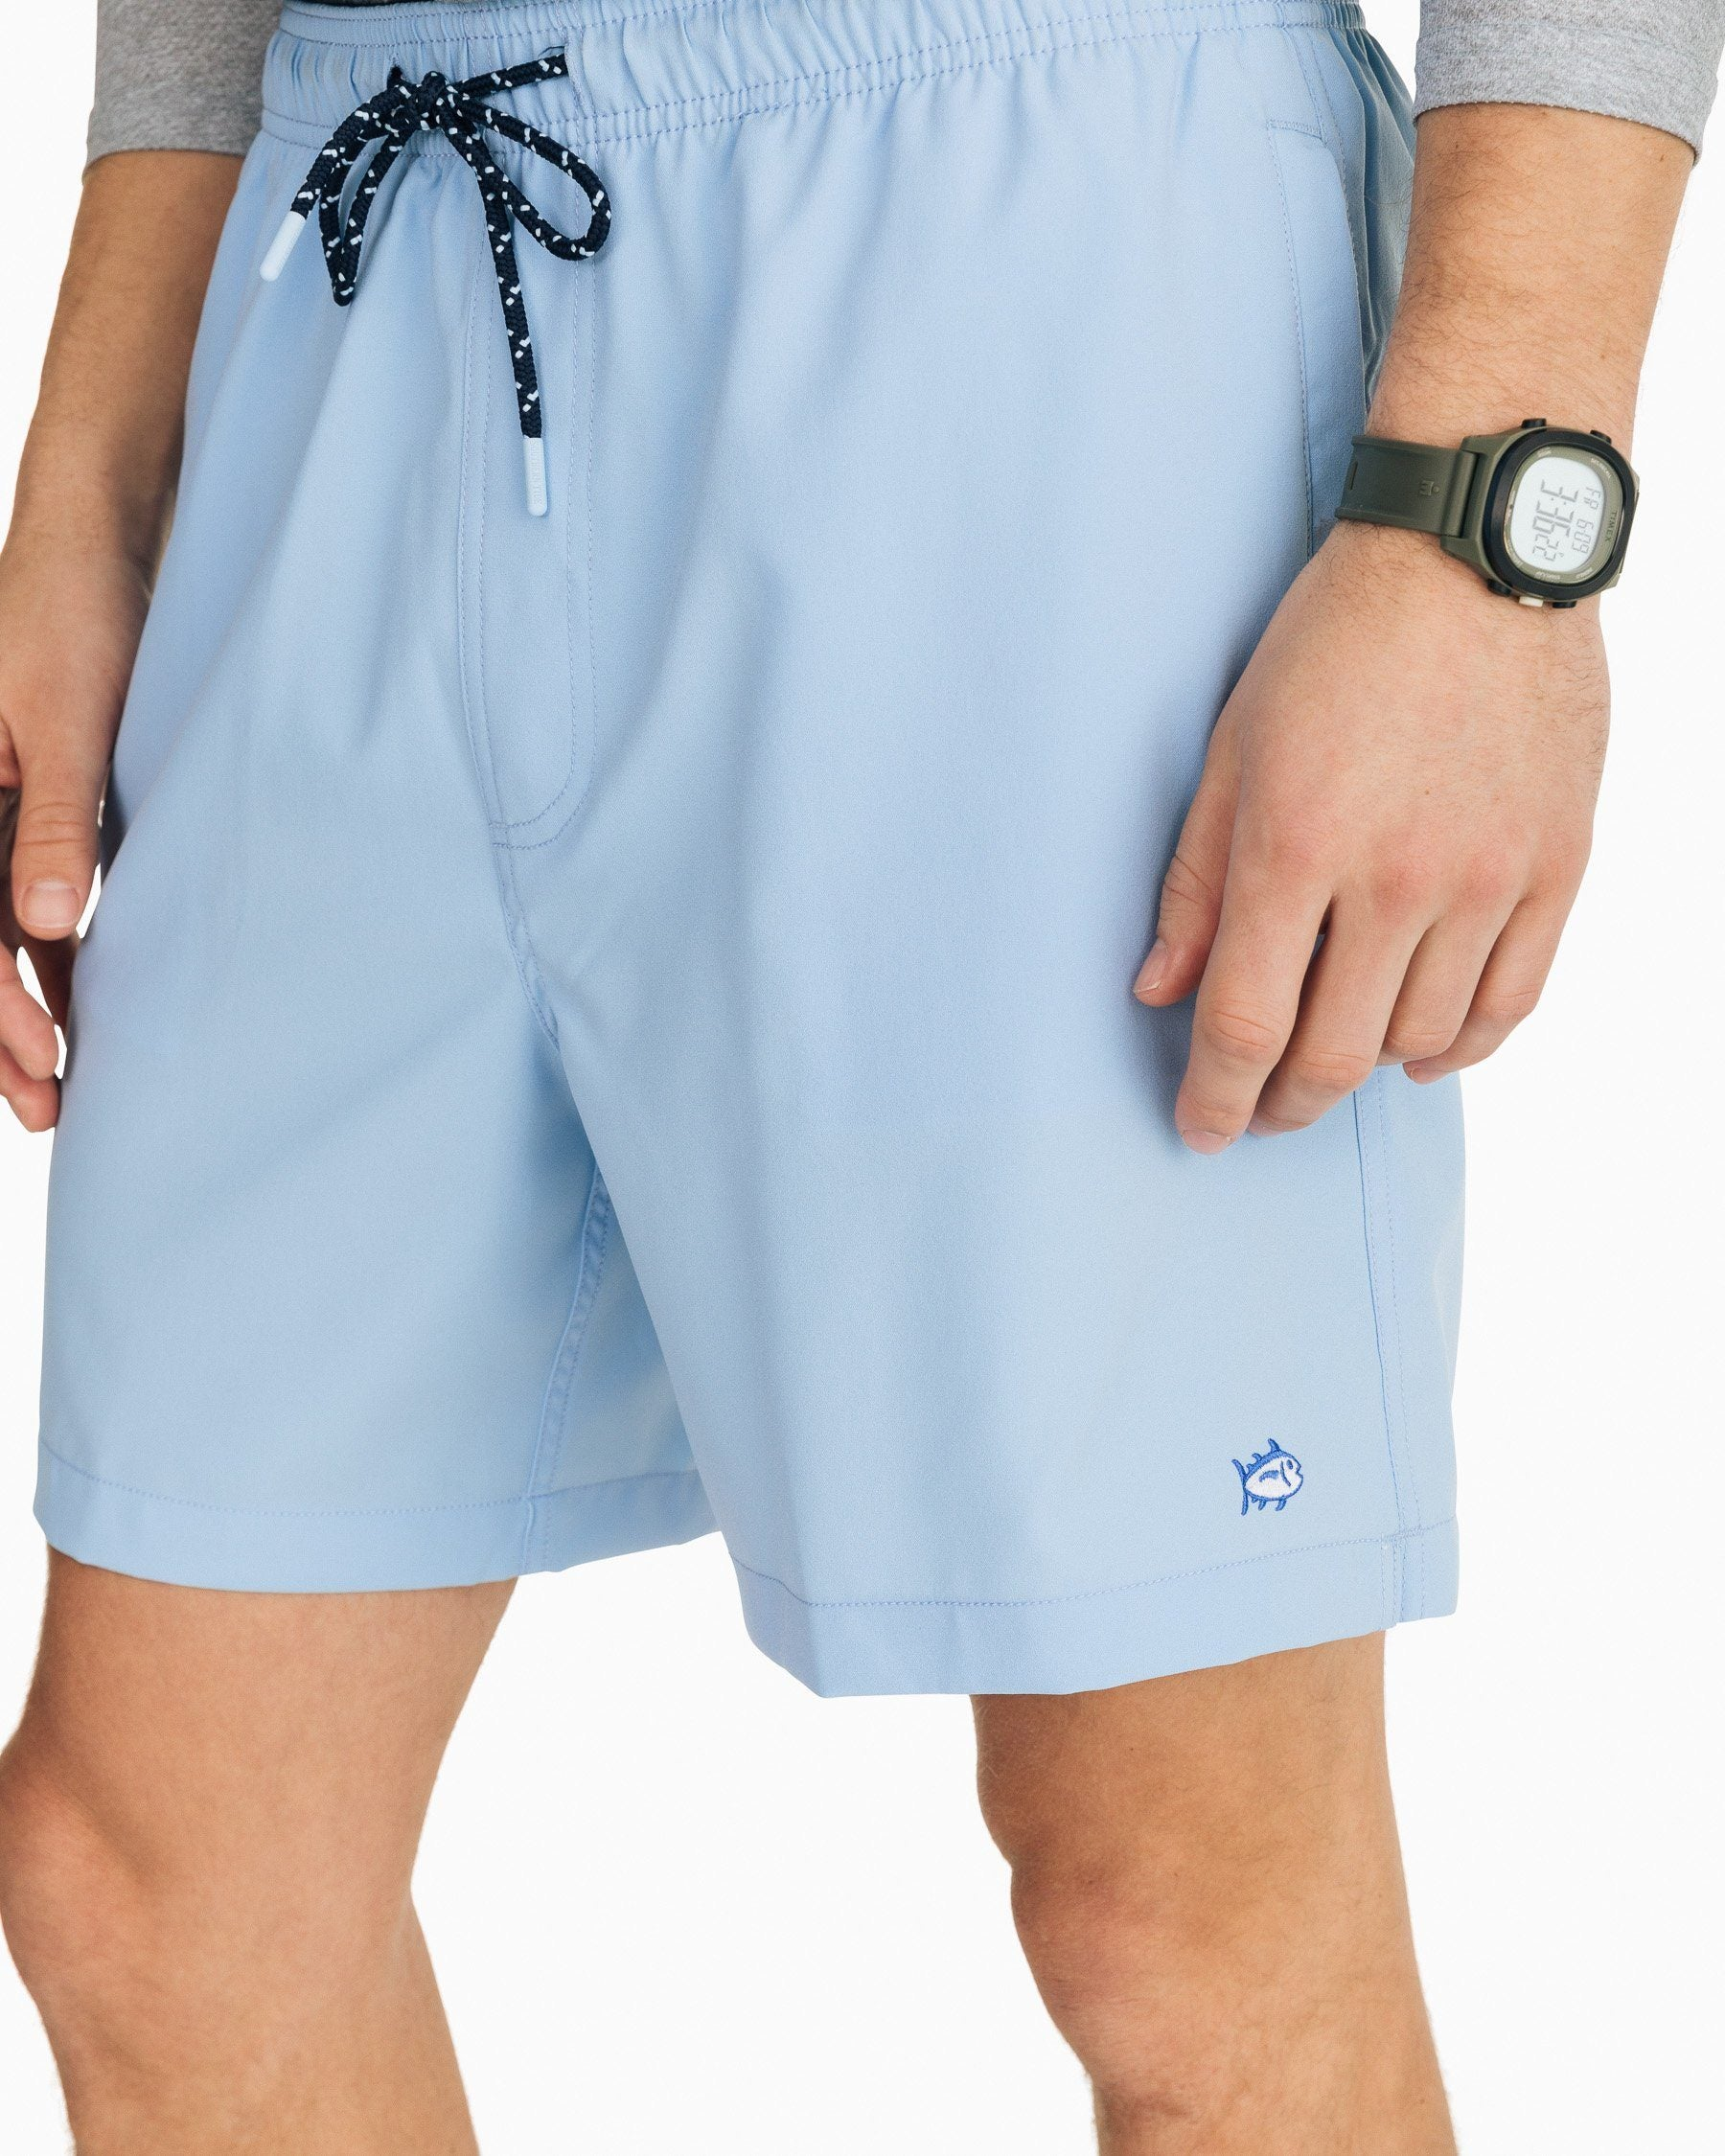 Water Nature Forest Mens Beach Shorts Linen Casual Fit Short Swim Trunks